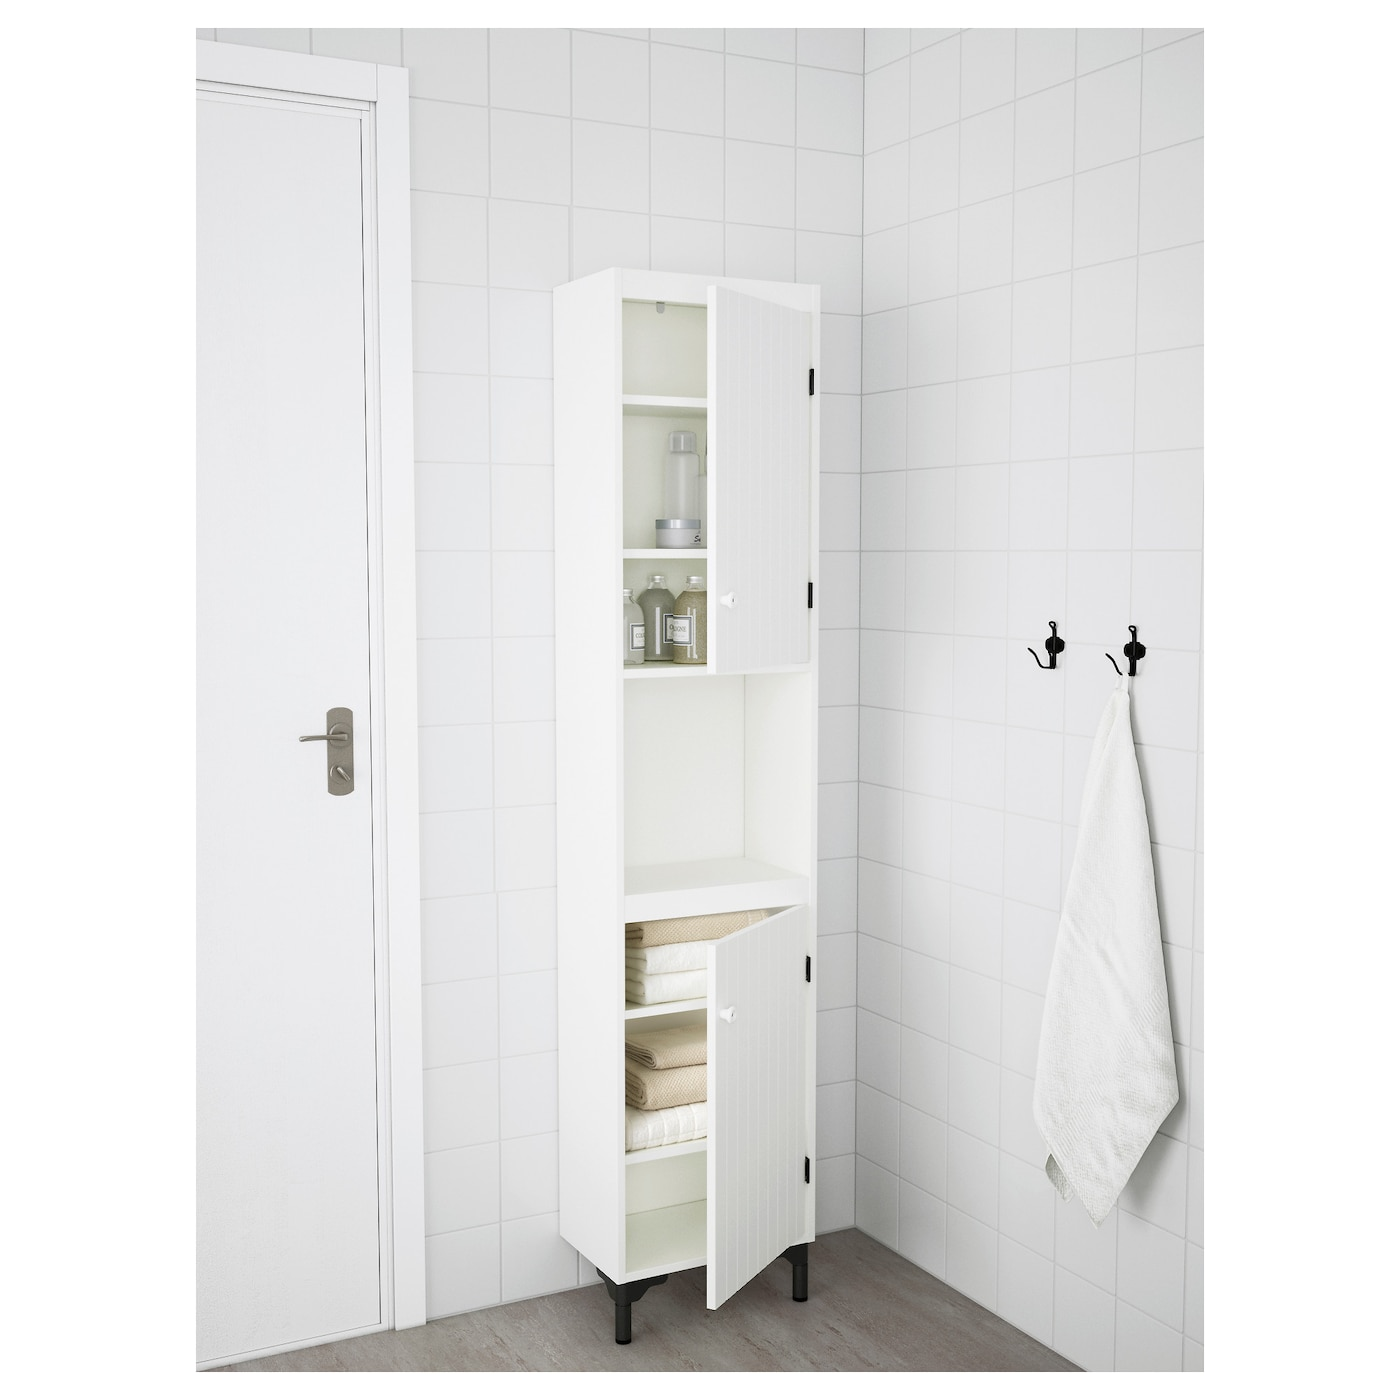 IKEA SILVERN High Cabinet With 2 Doors You Can Mount The Door To Open From